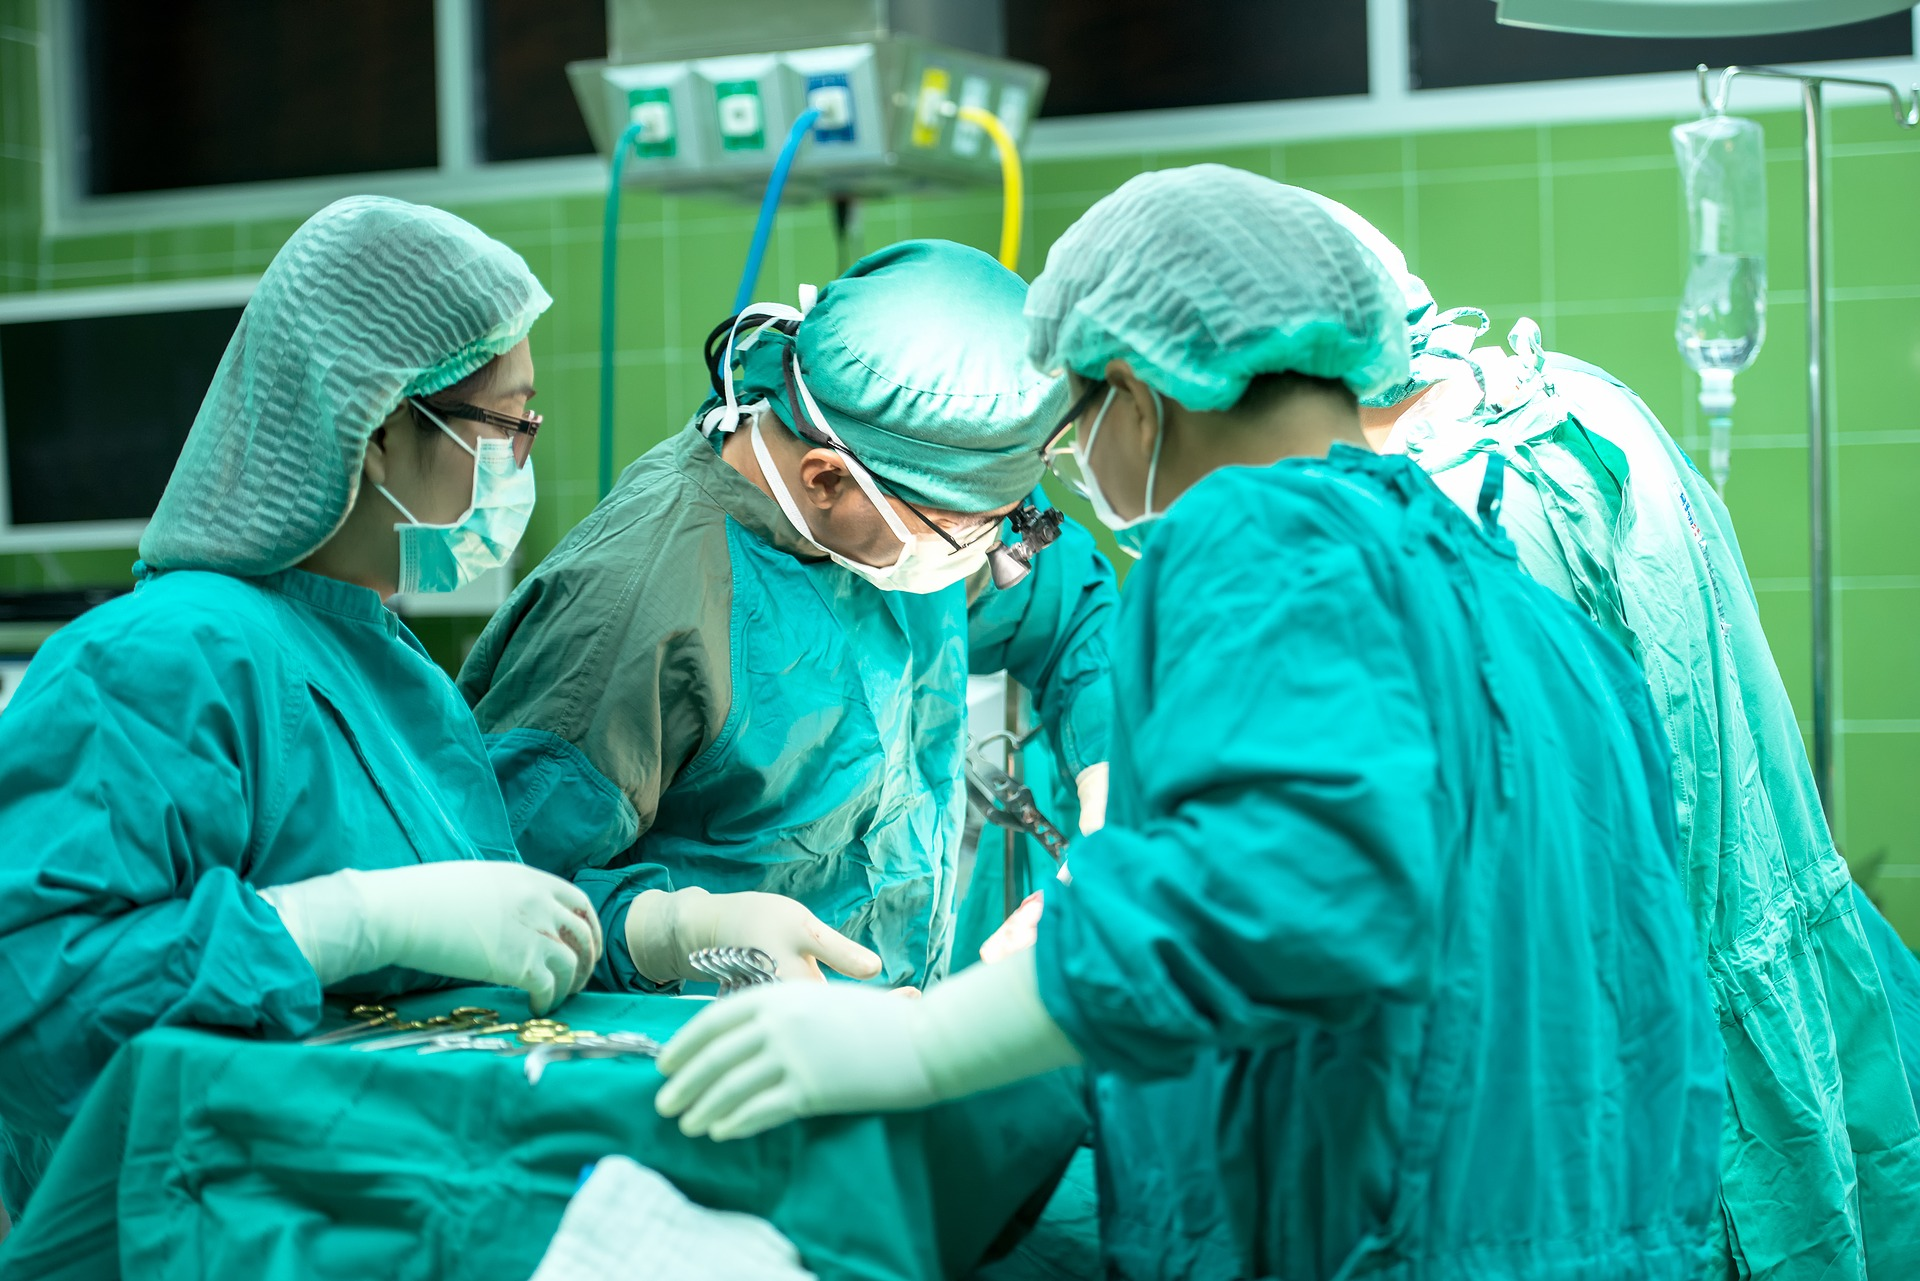 Surgeons perform an operation in a hospital